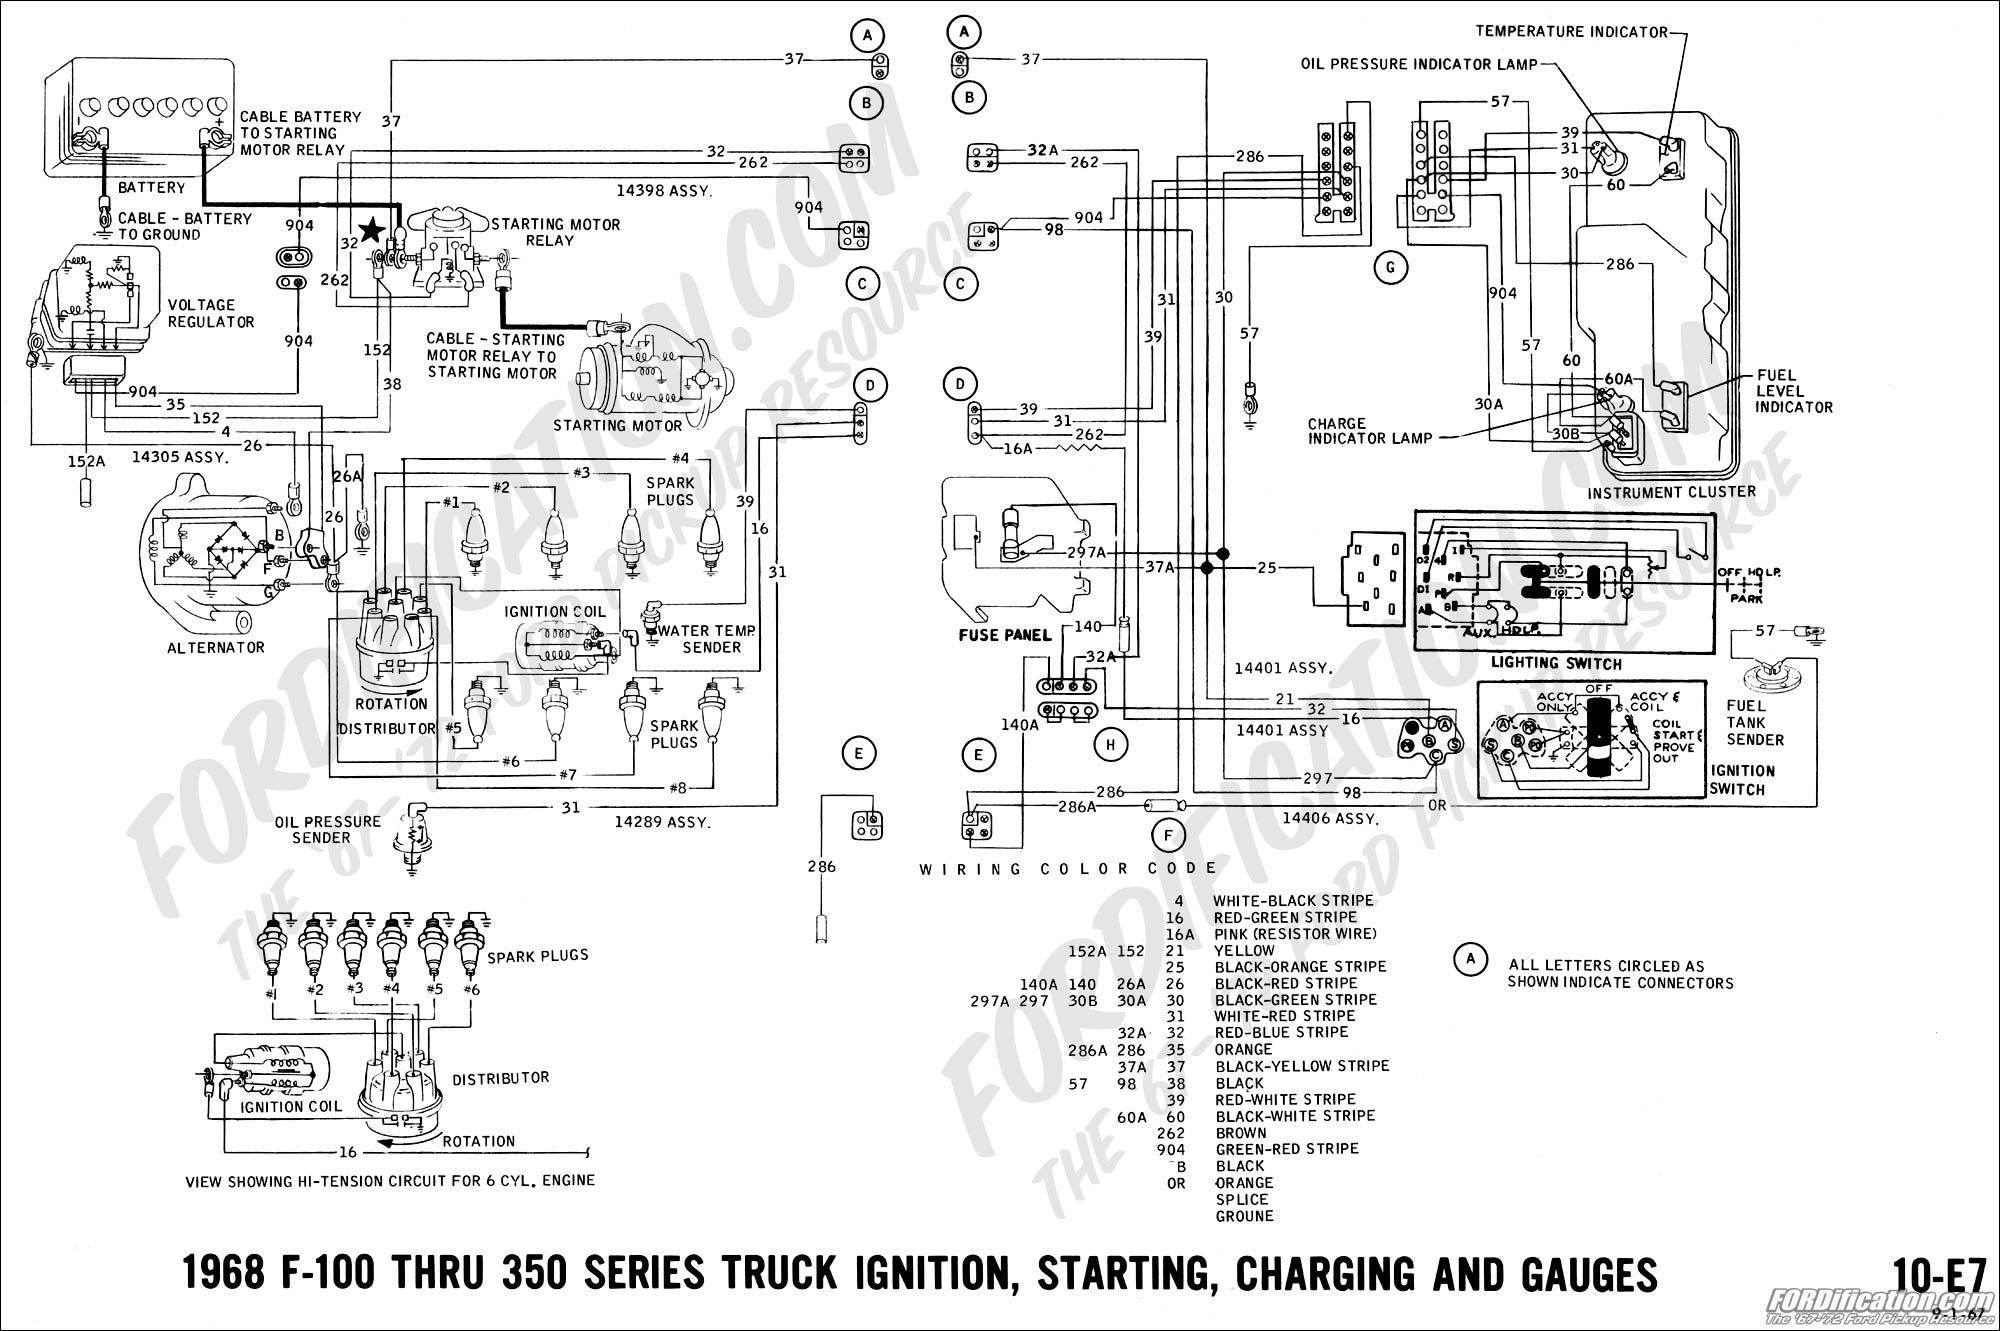 68 09 ford truck technical drawings and schematics section h wiring 1999 F150 Radio Wiring Diagram at bayanpartner.co